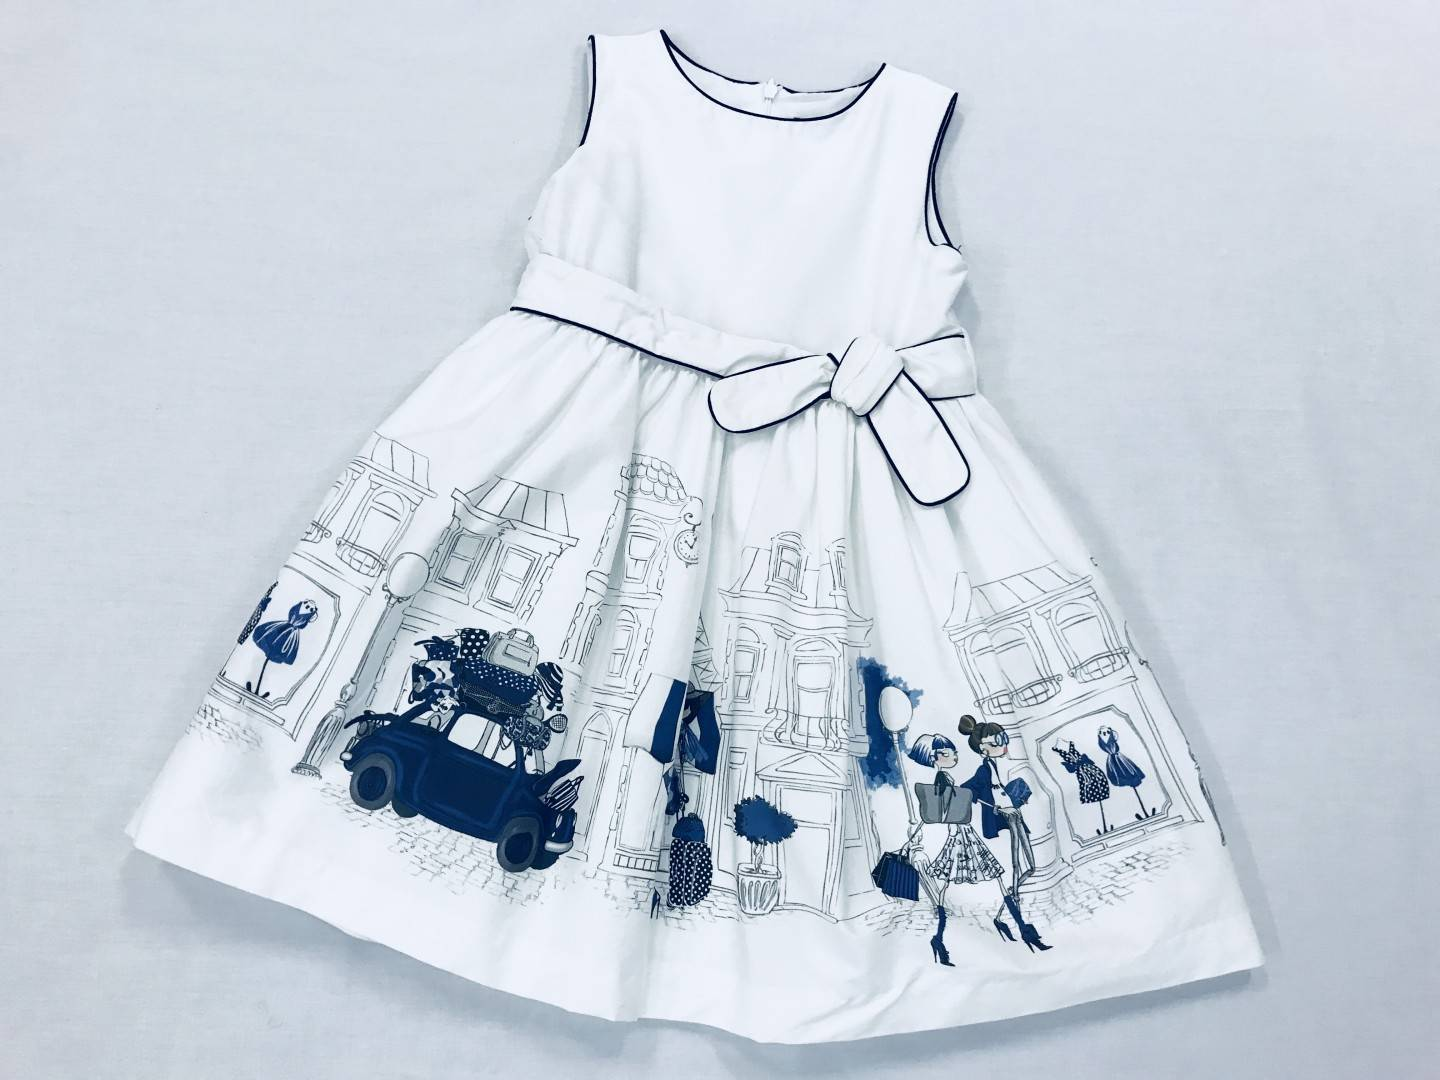 bd22d5b036 NAVY BLUE AND WHITE DRESS SIZE 5-7 ...